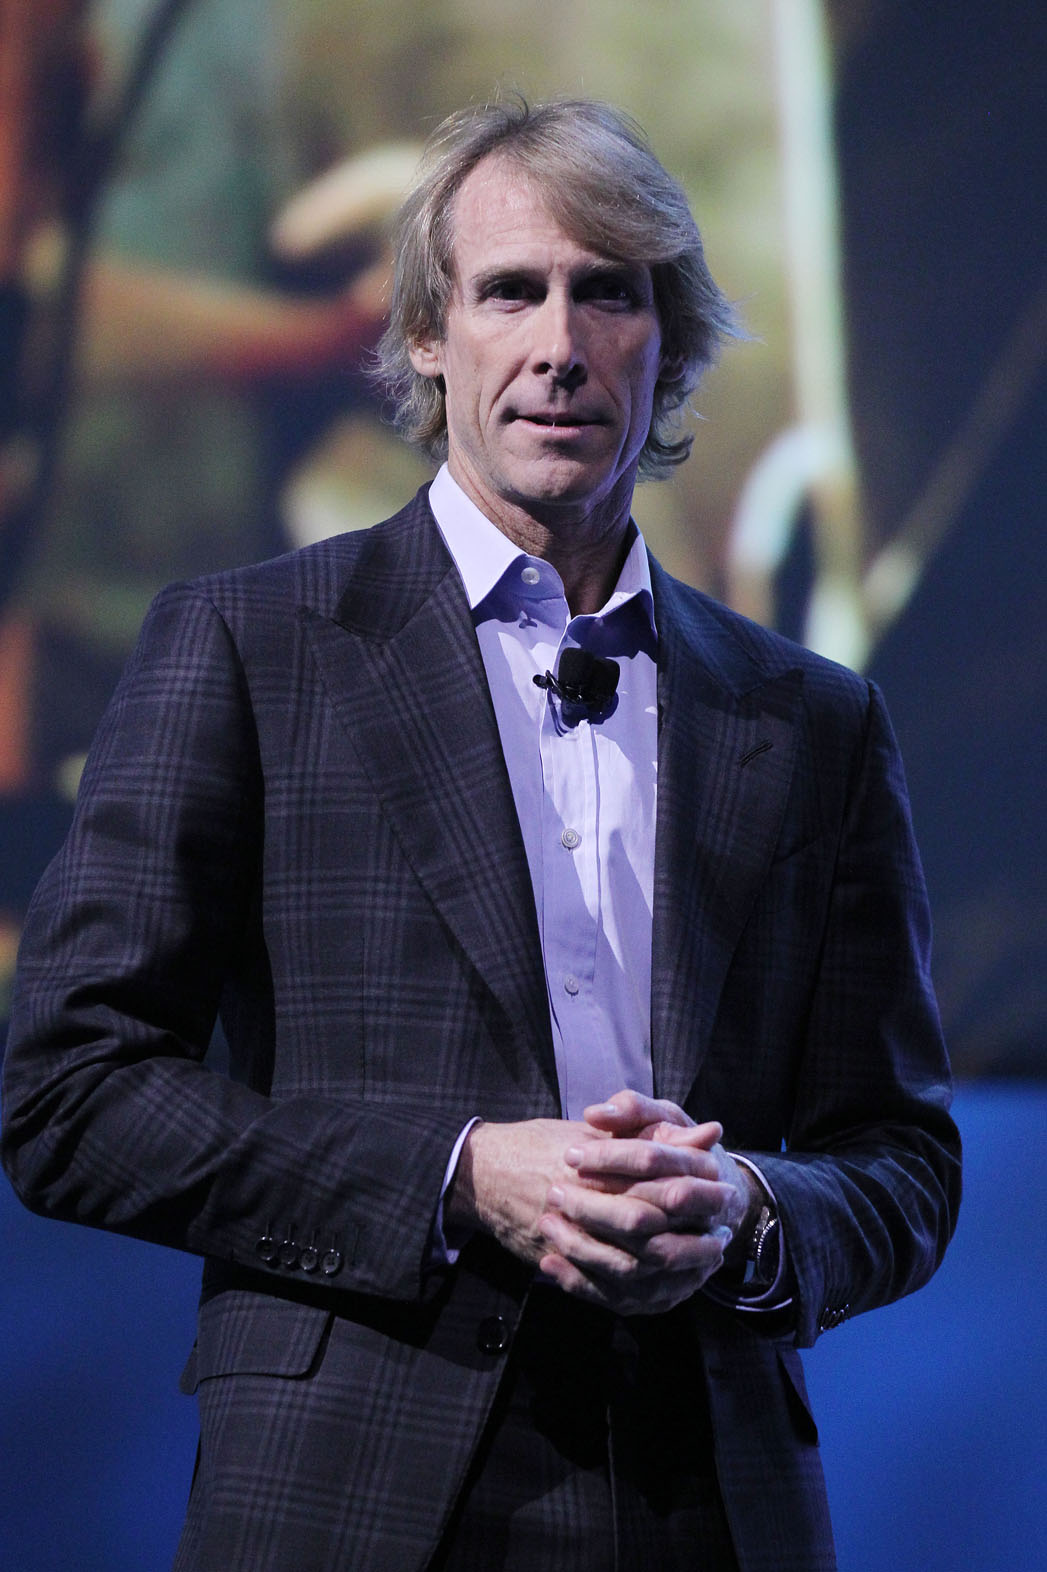 Michael Bay on Stage at CES - P 2014